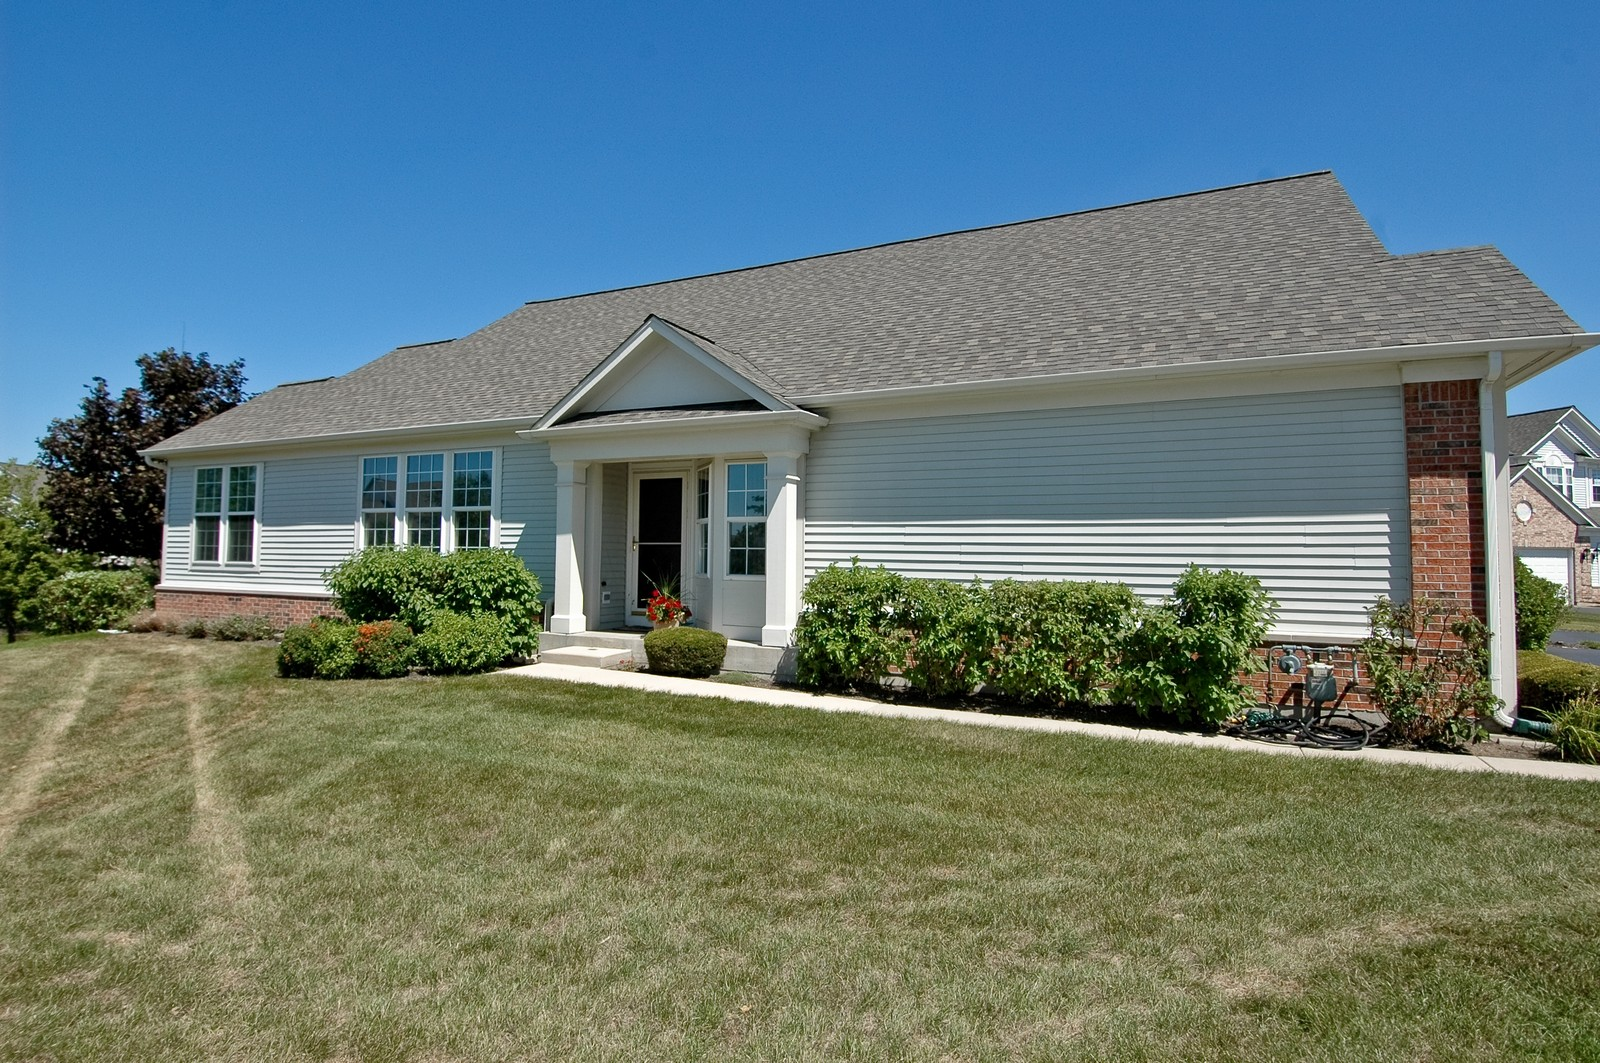 Real Estate Photography - 28 Twickenham, Algonquin, IL, 60102 - Front View